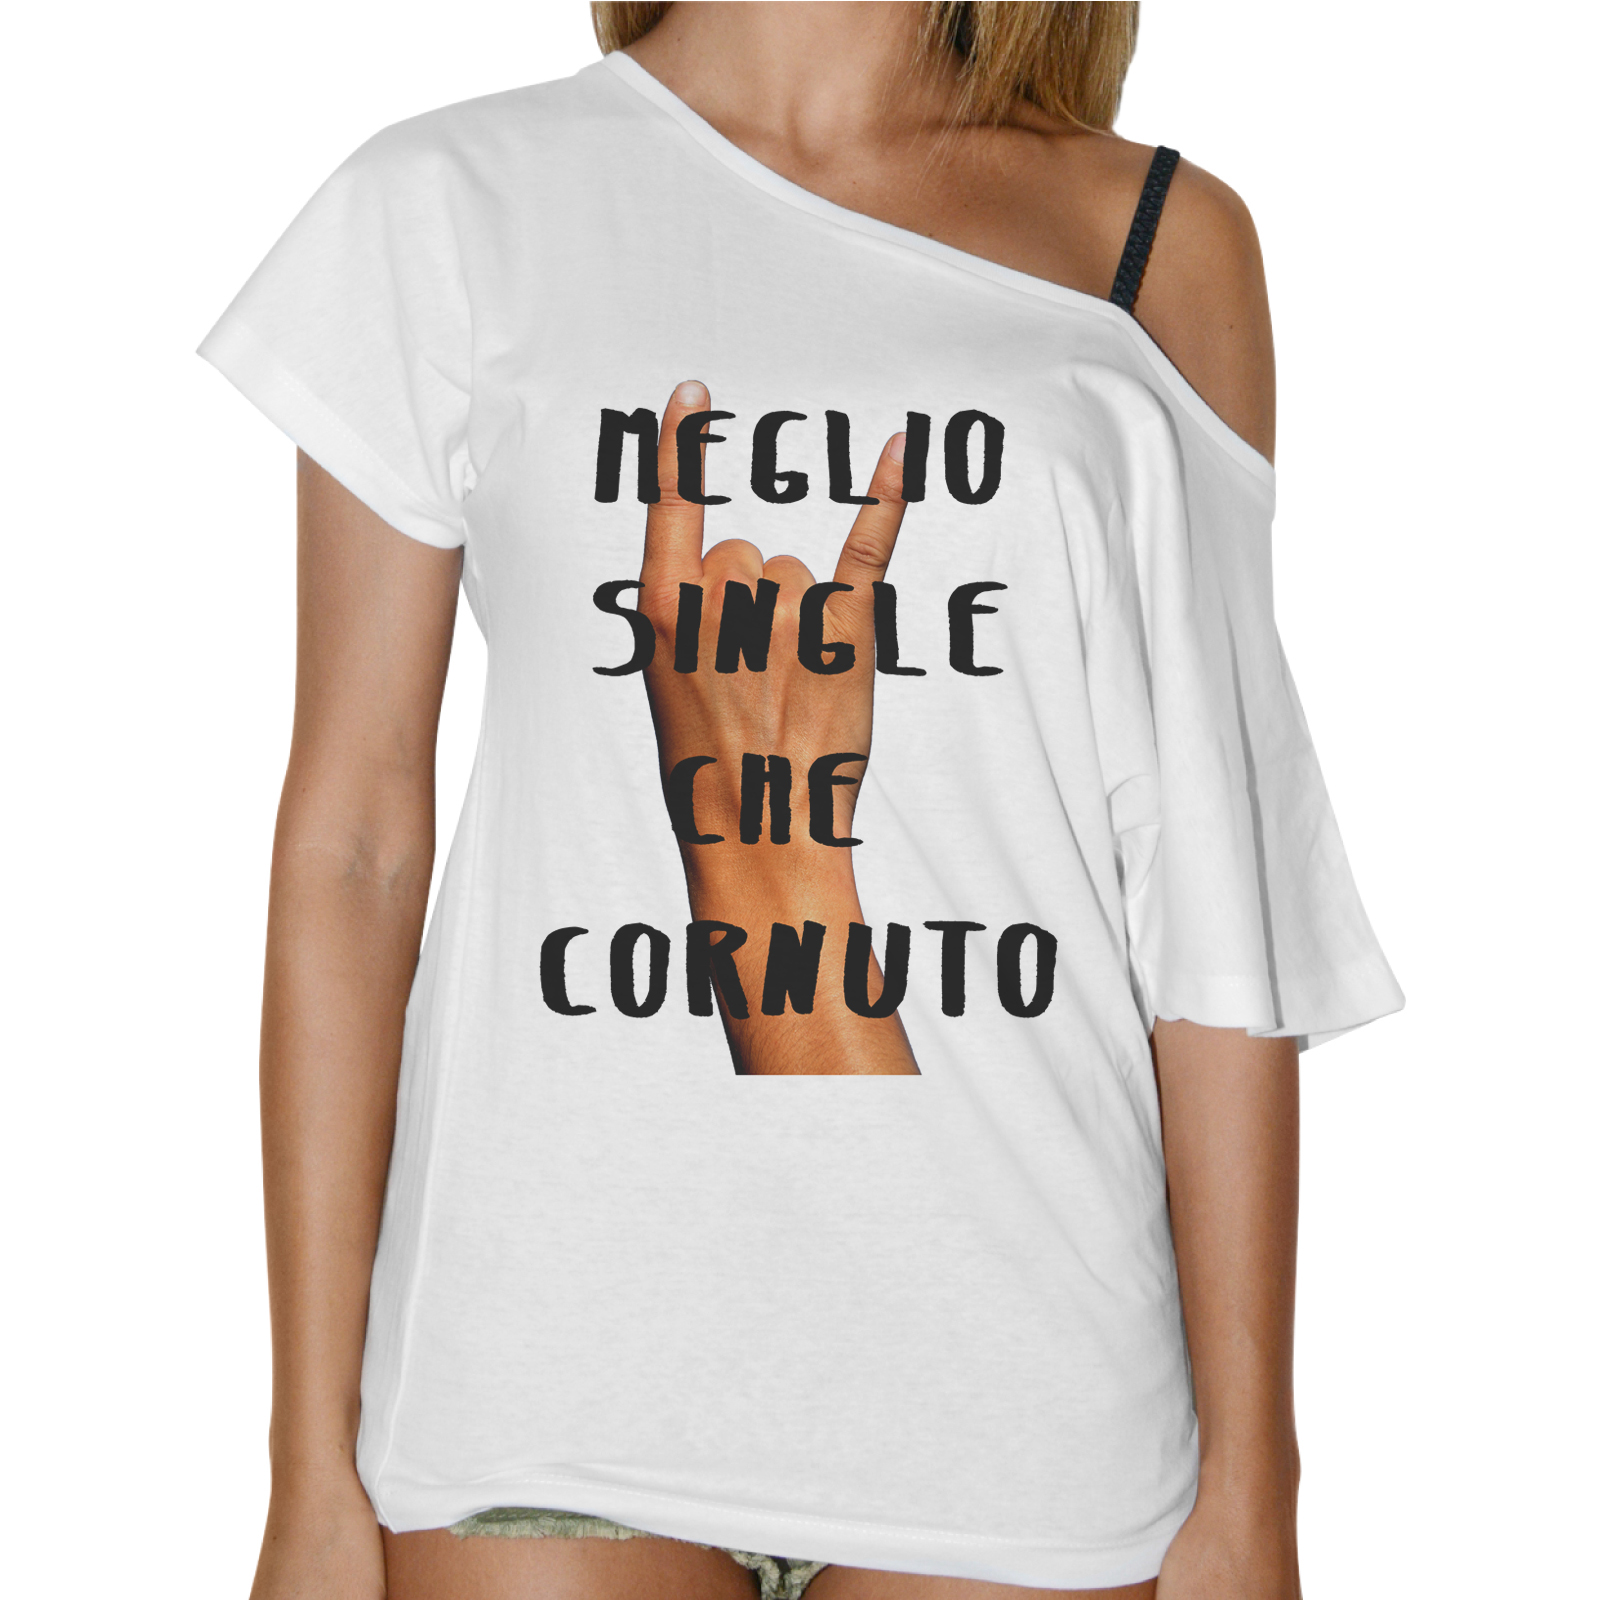 T-Shirt Donna Collo Barca MEGLIO SINGLE